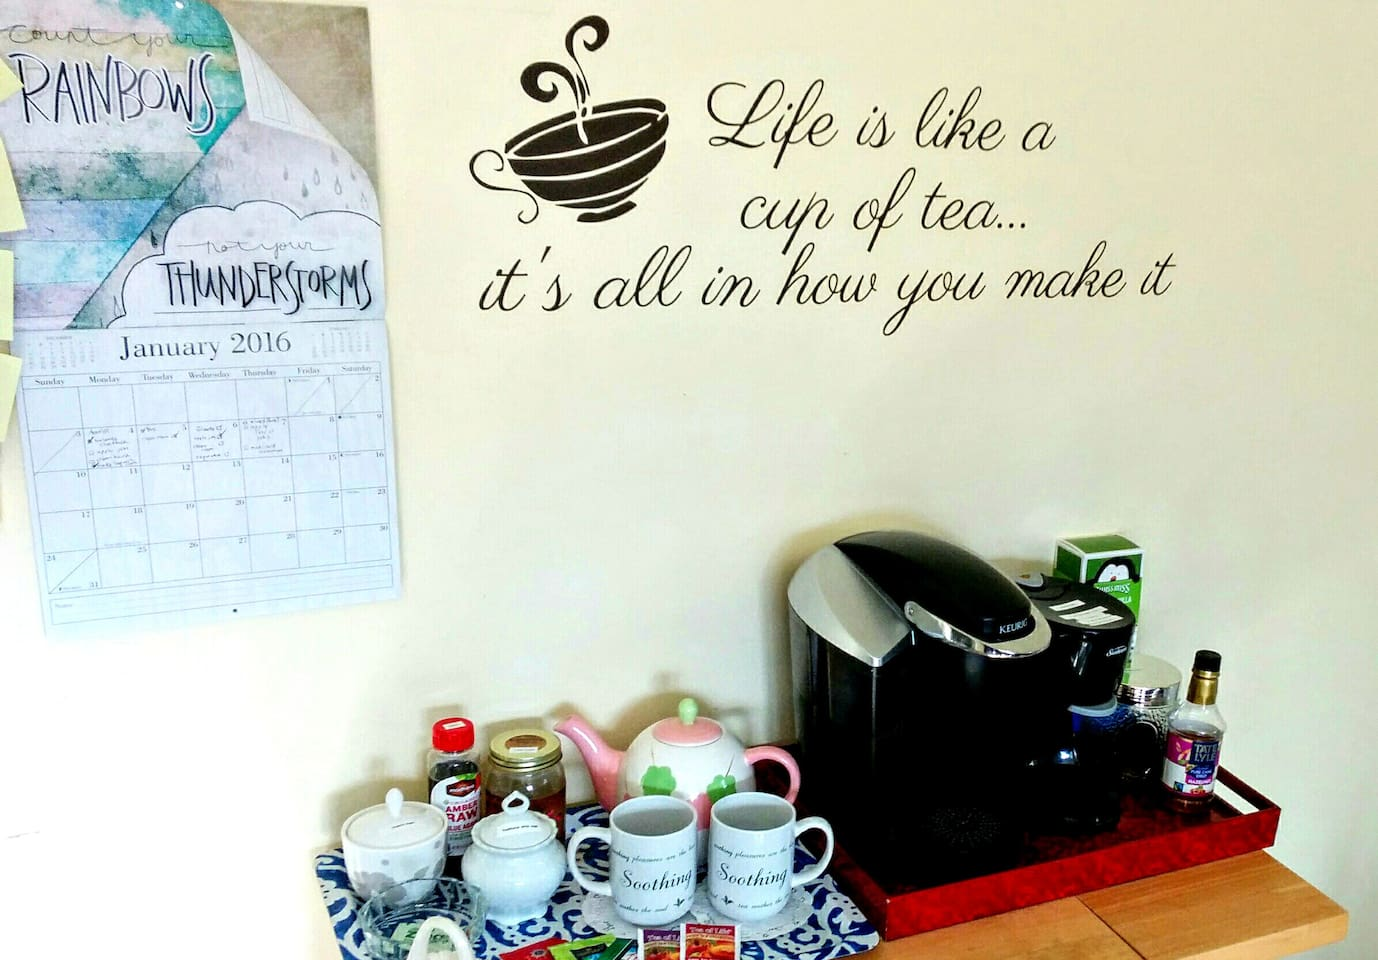 I love tea. You can help yourself to some tea or coffee whenever you feel like it.